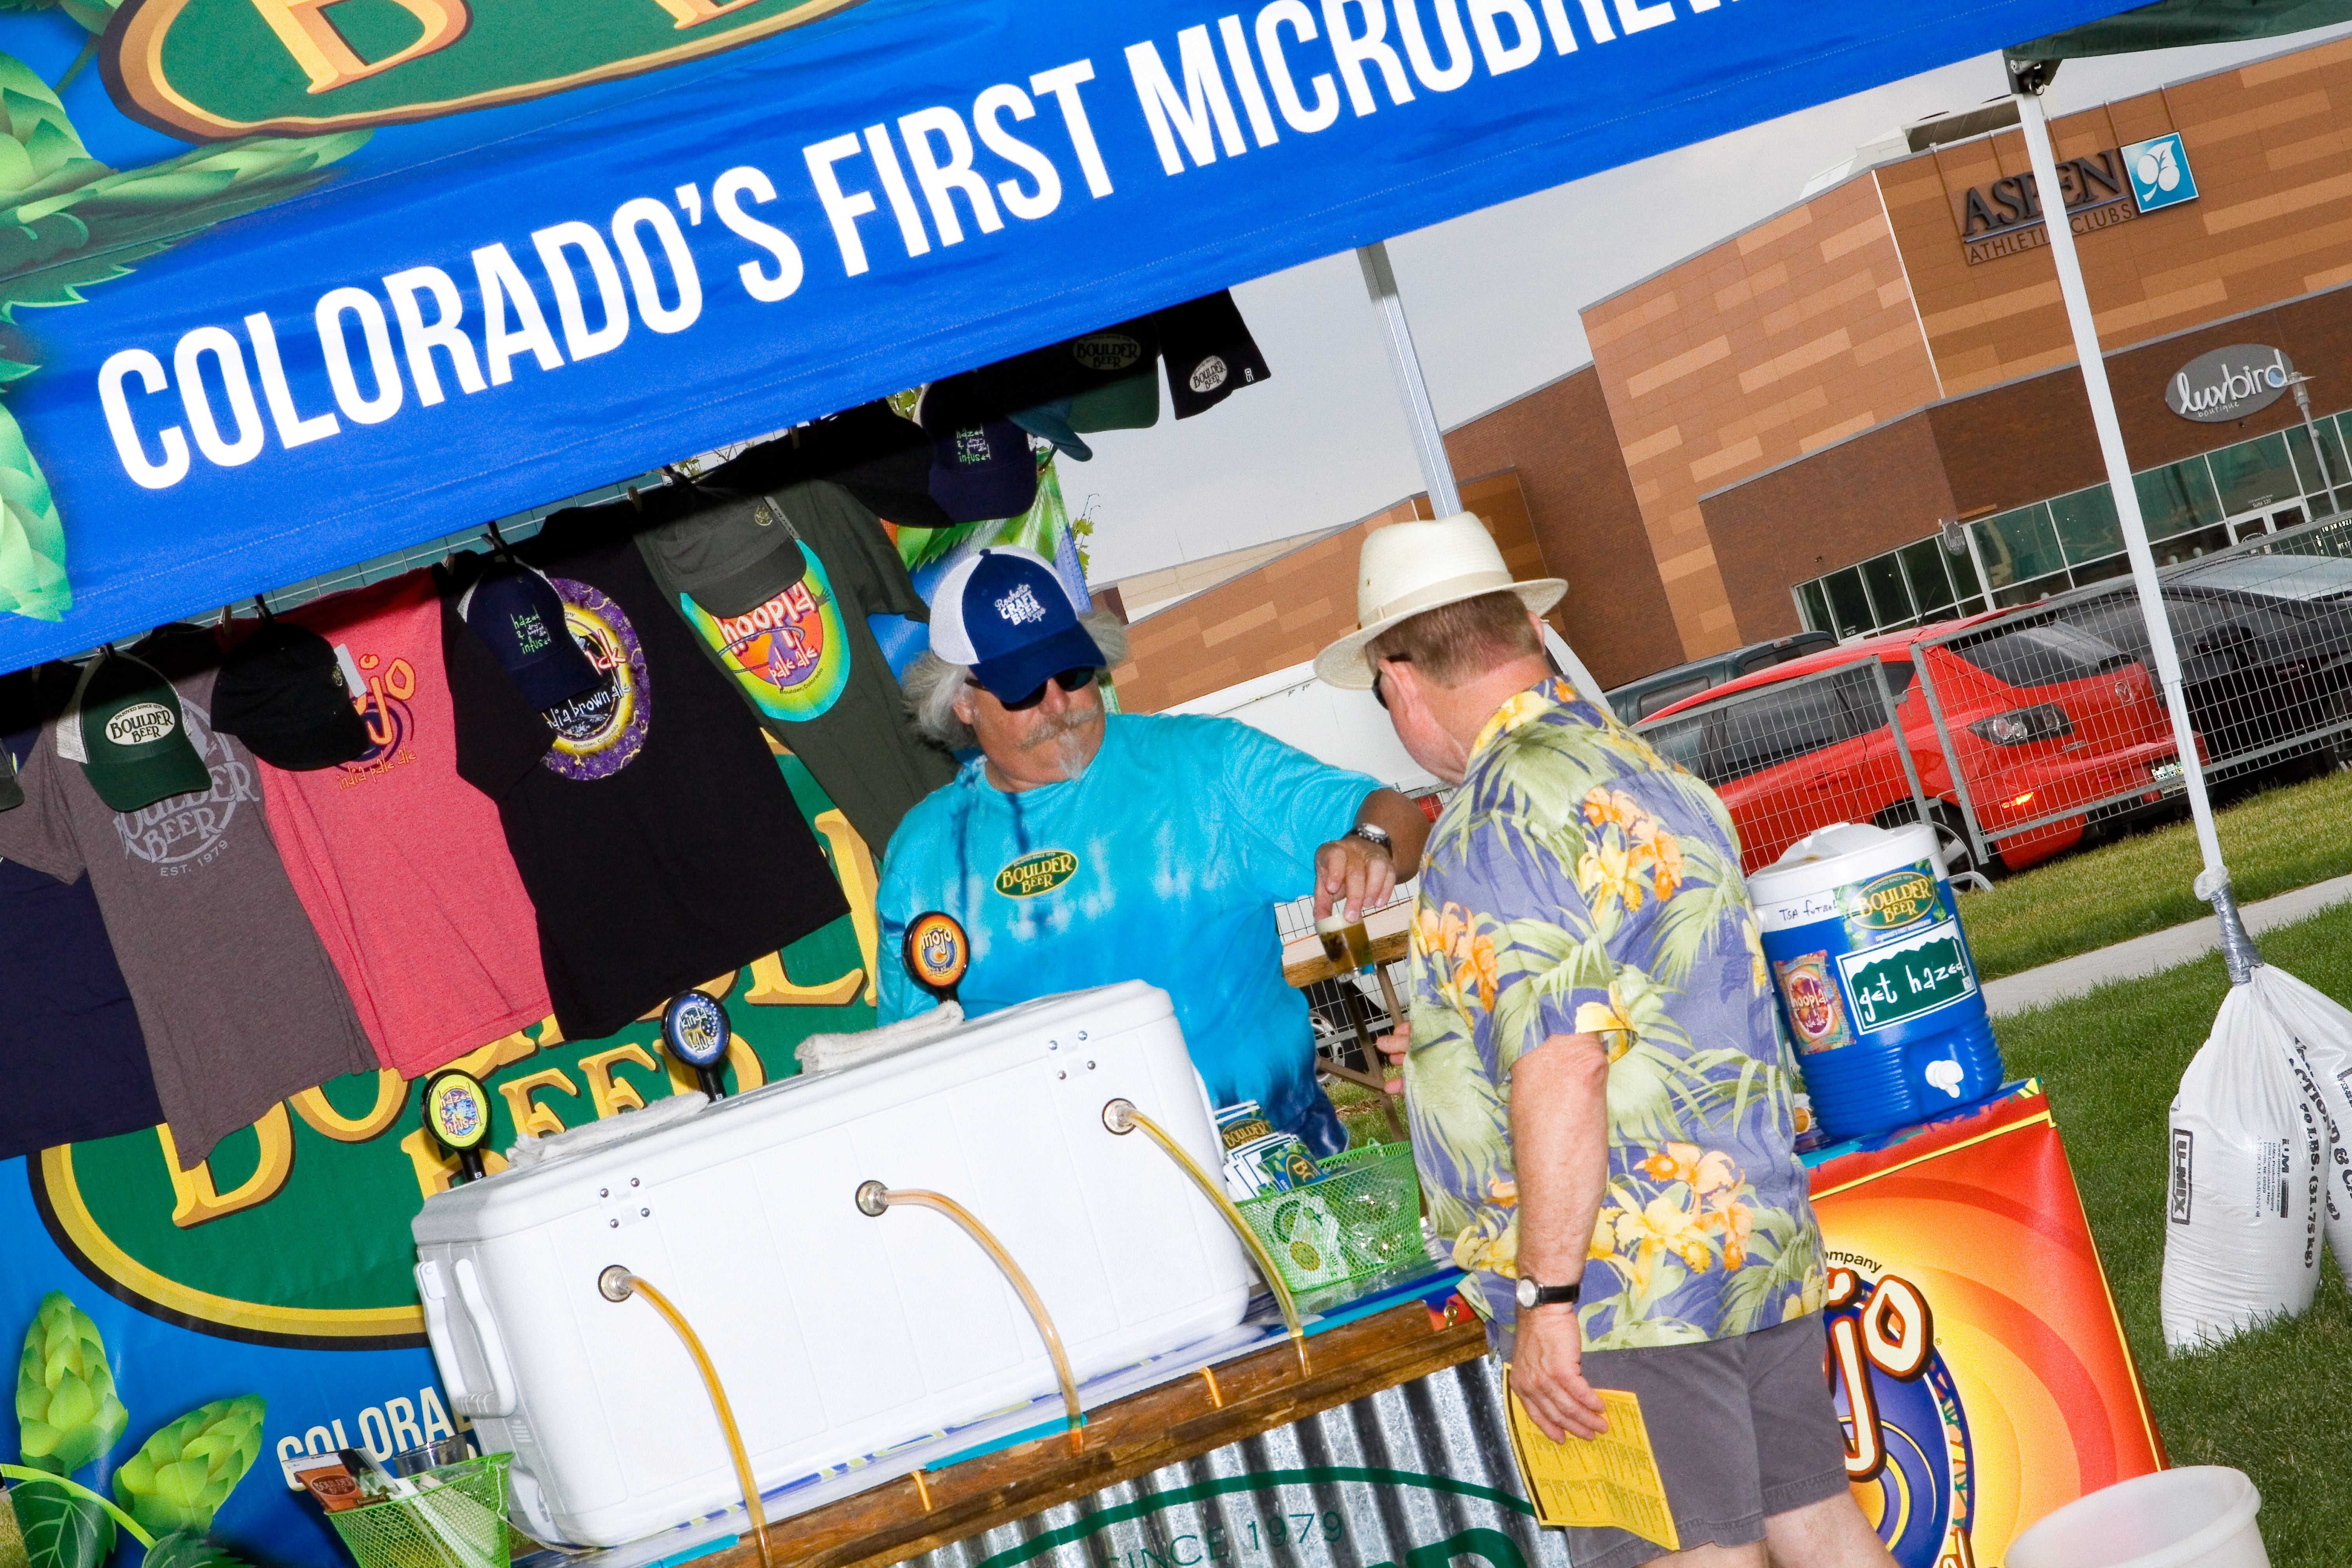 33+ Boulder arts and crafts festival ideas in 2021